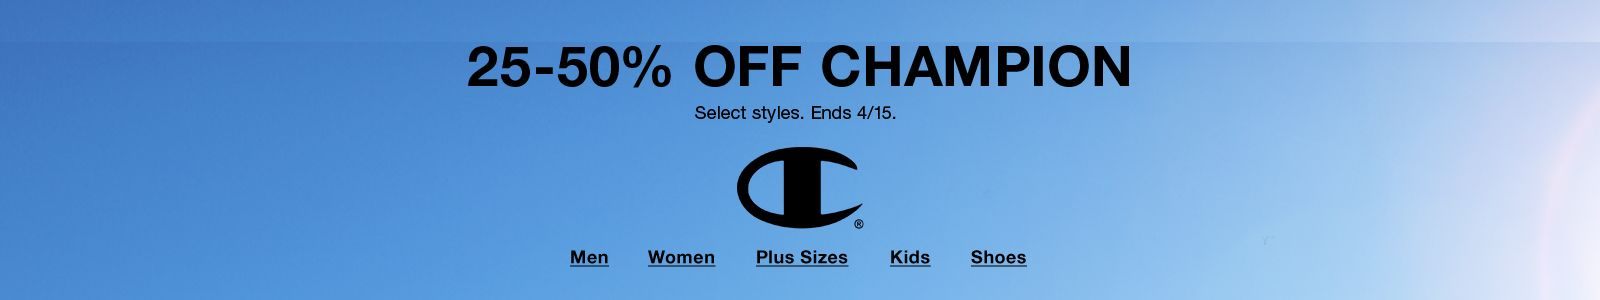 25-50% Off Champion, Select styles, Ends 4/15, Men, Women, Plus Sizes, Kids, Shoes